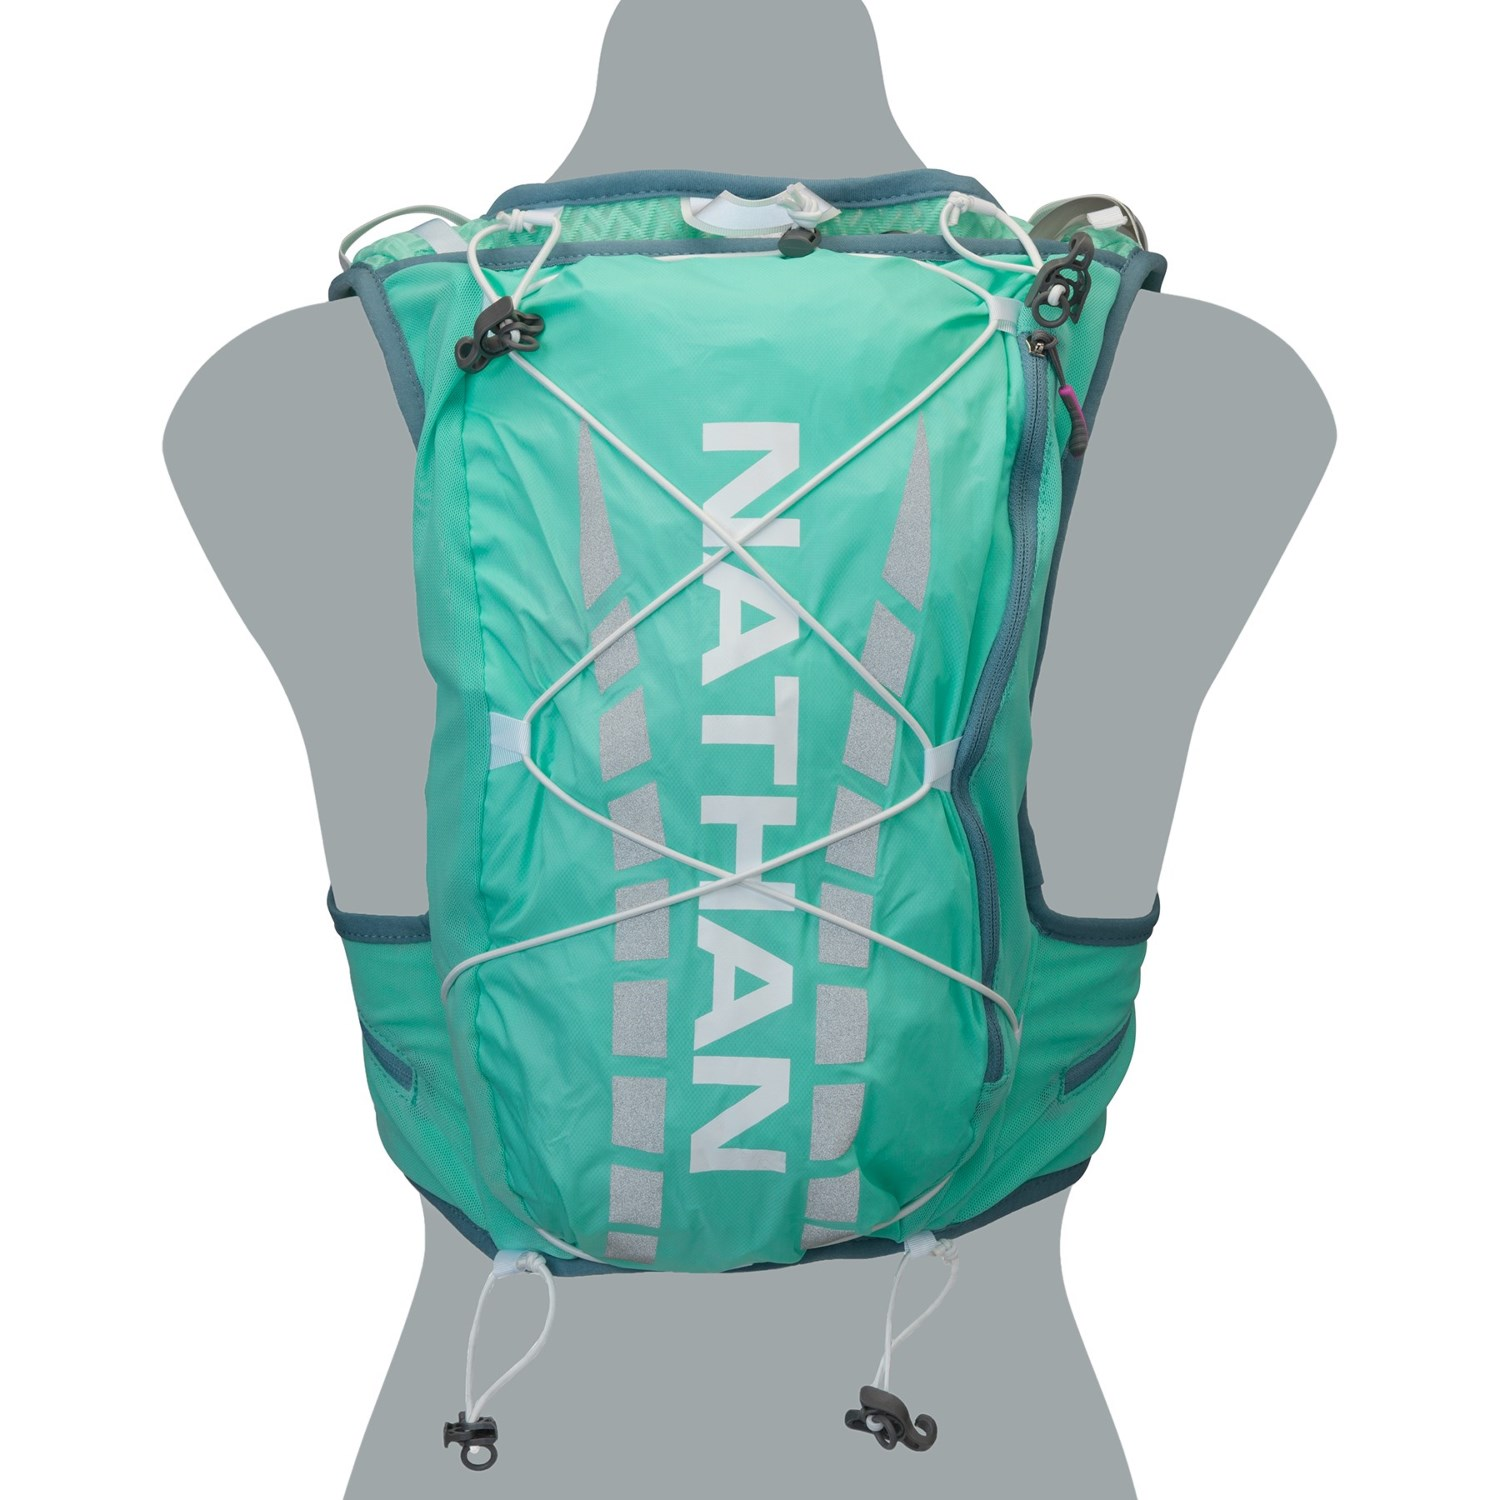 d9d1315be3 Nathan VaporAiress Hydration Backpack - 70 fl.oz. (For Women)